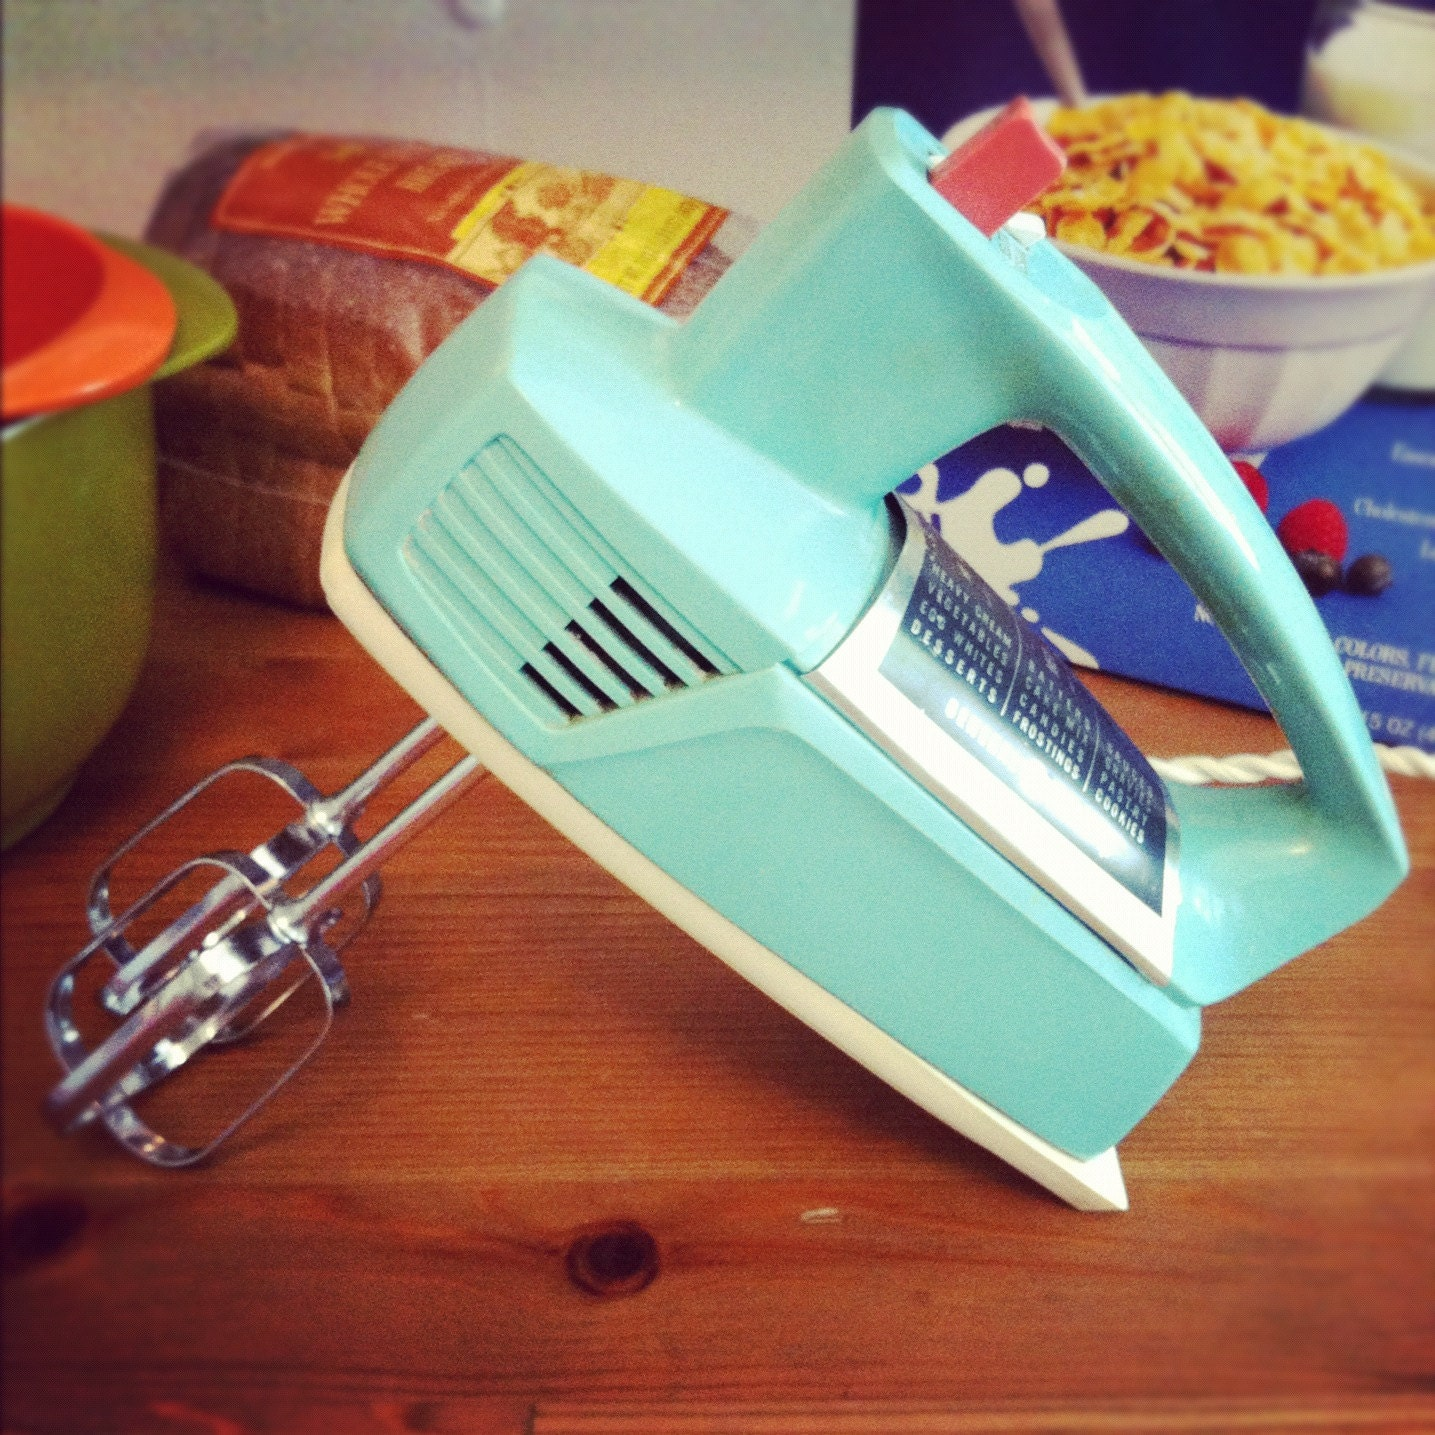 Vintage retro general electric hand mixer for Antique general electric mixer